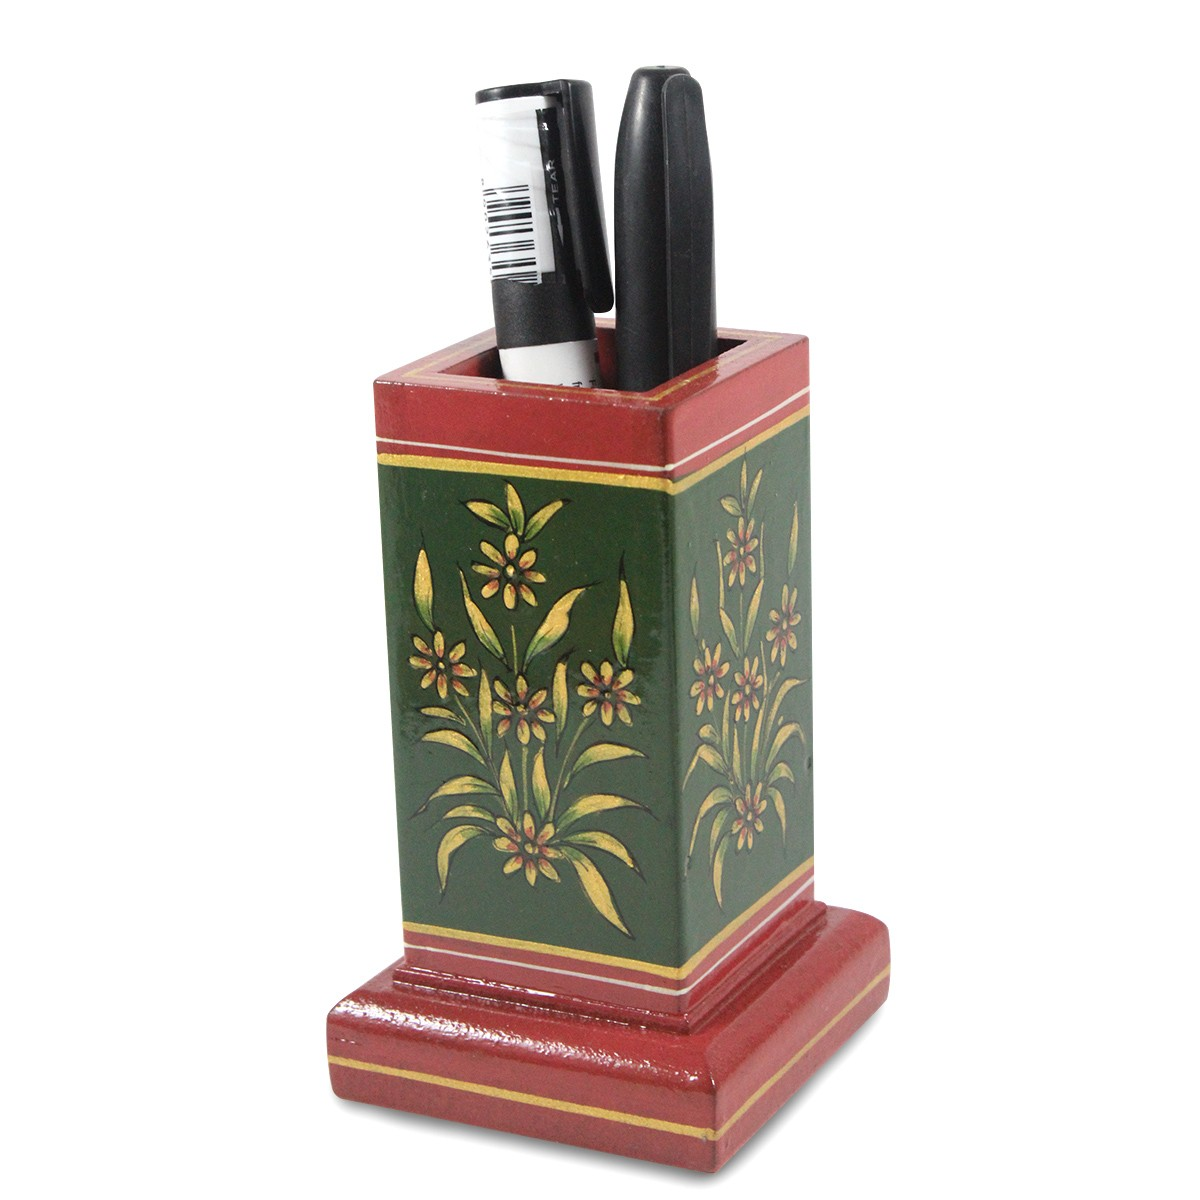 Exclusive Wooden Green Pen Stand With Metal Inlay For Gifting by Rural Artisans